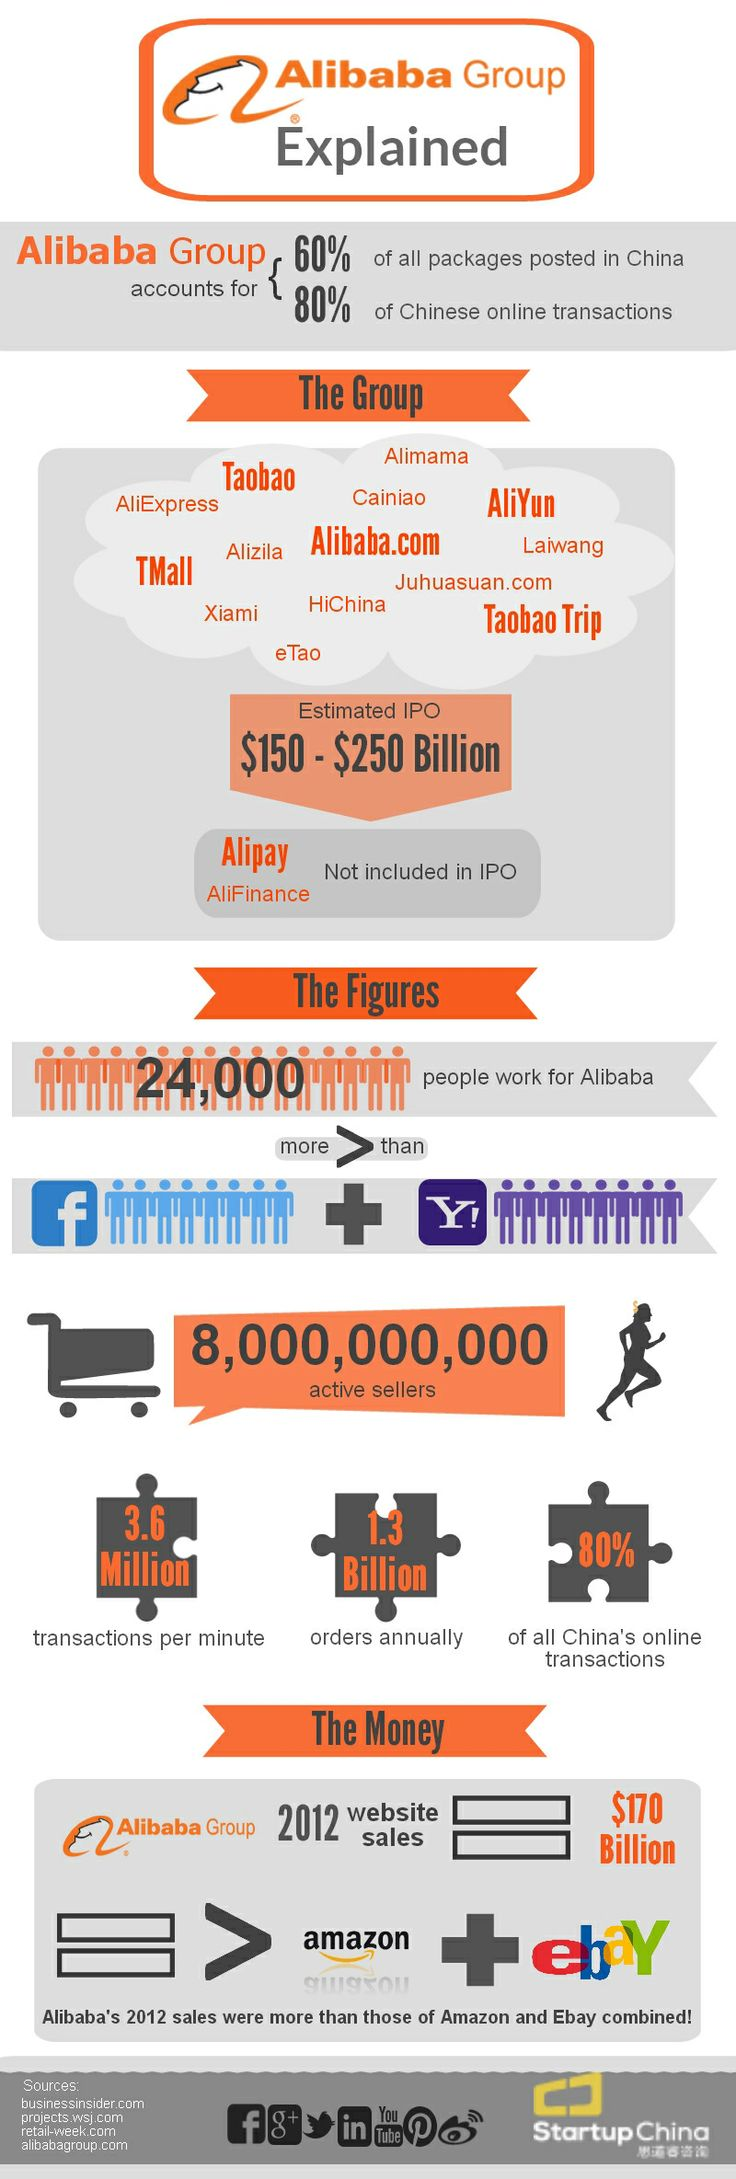 With Alibaba's upcoming IPO, Startup China have put together an infographic about the company's E-commerce power